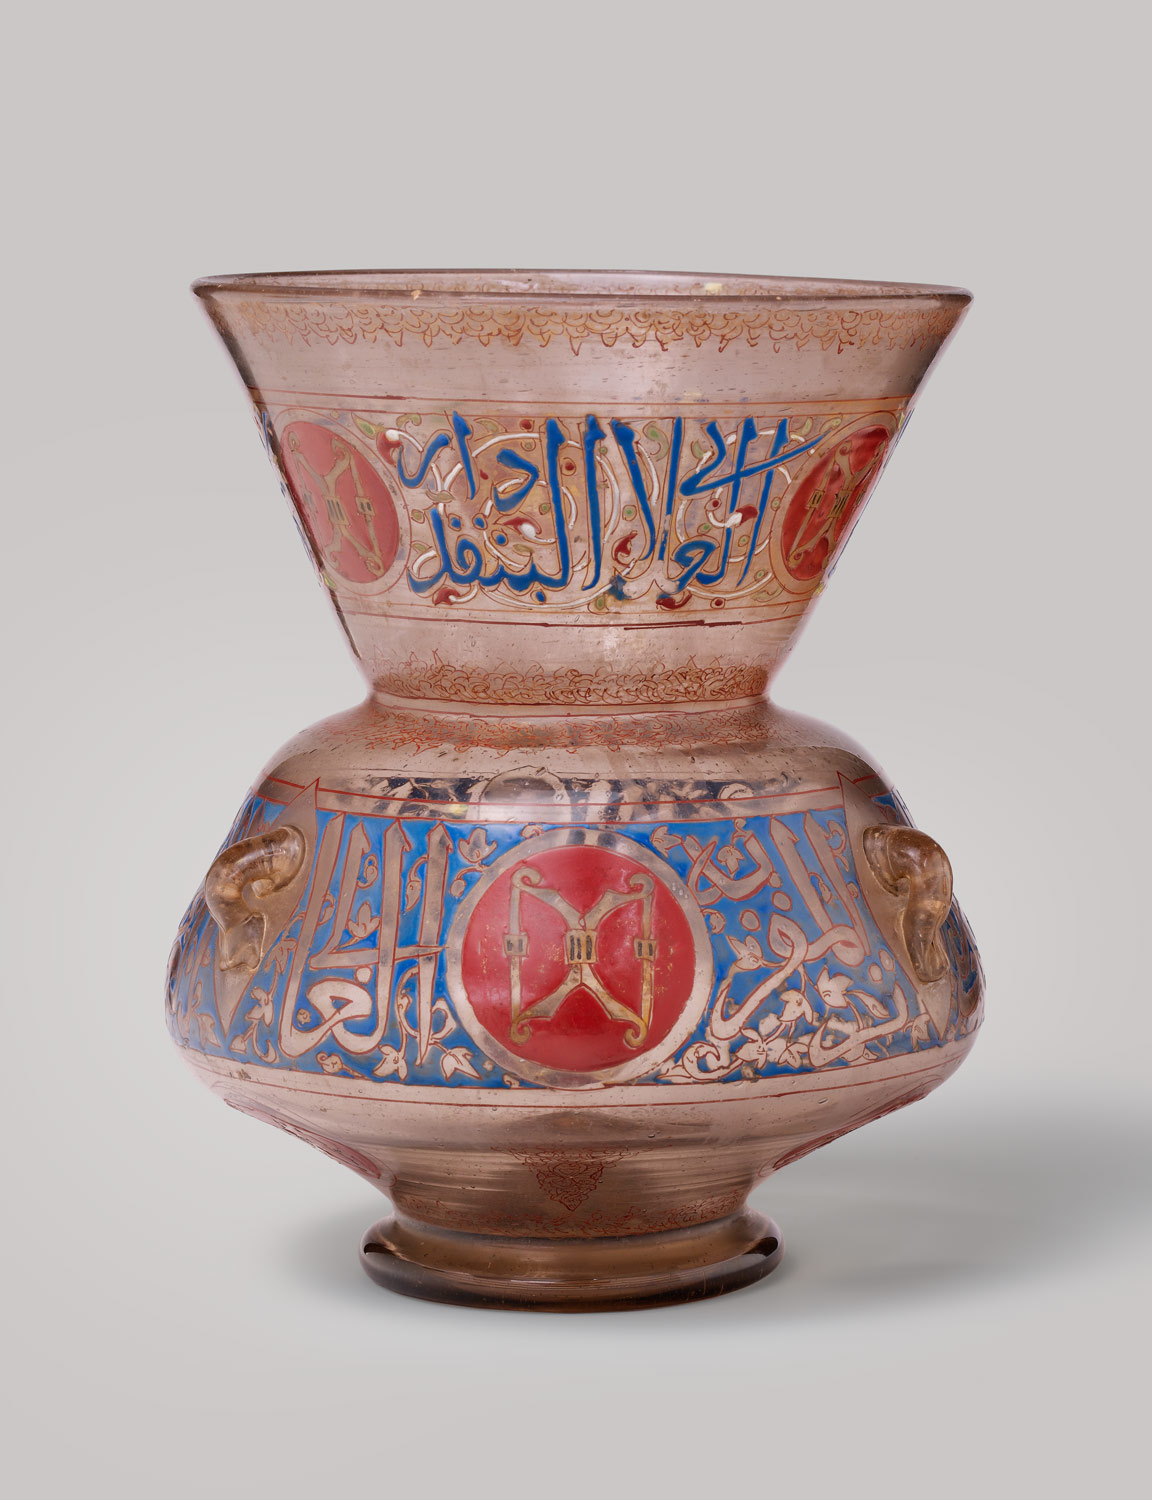 Mosque Lamp for the Mausoleum of Amir Aydakin al-Alai al-Bunduqdar